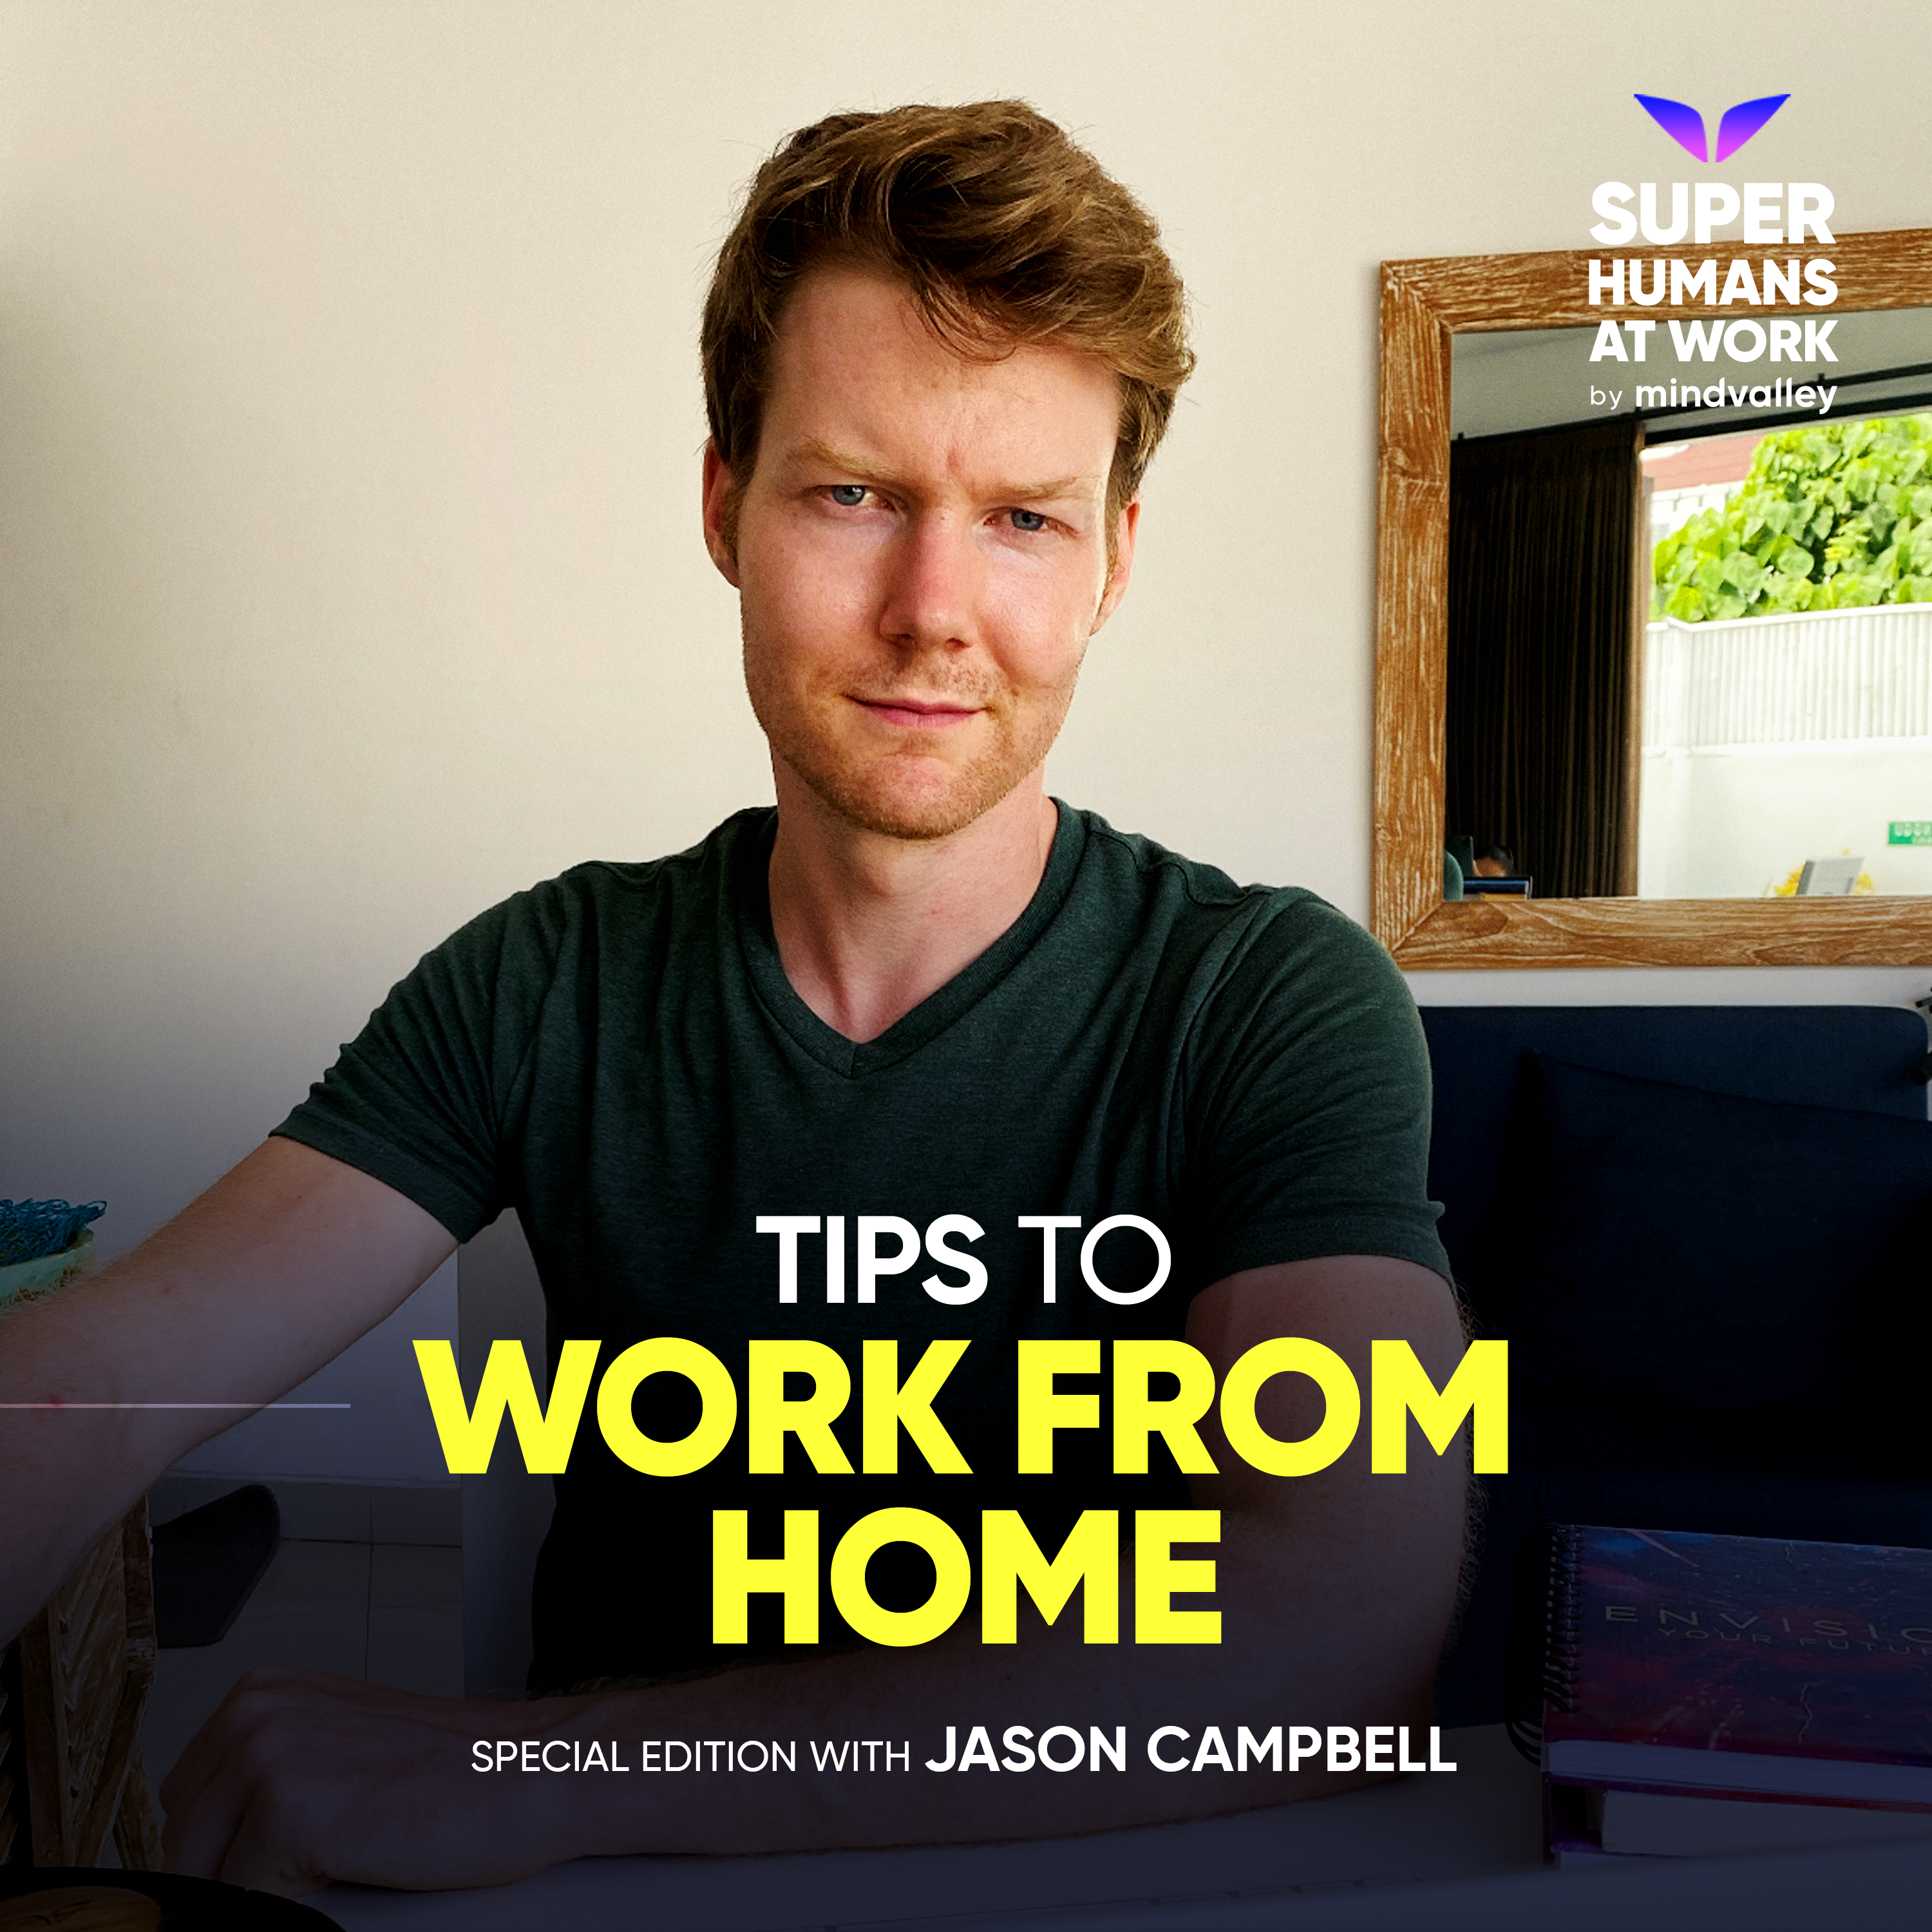 4 Tips To Work From Home - Jason Campbell